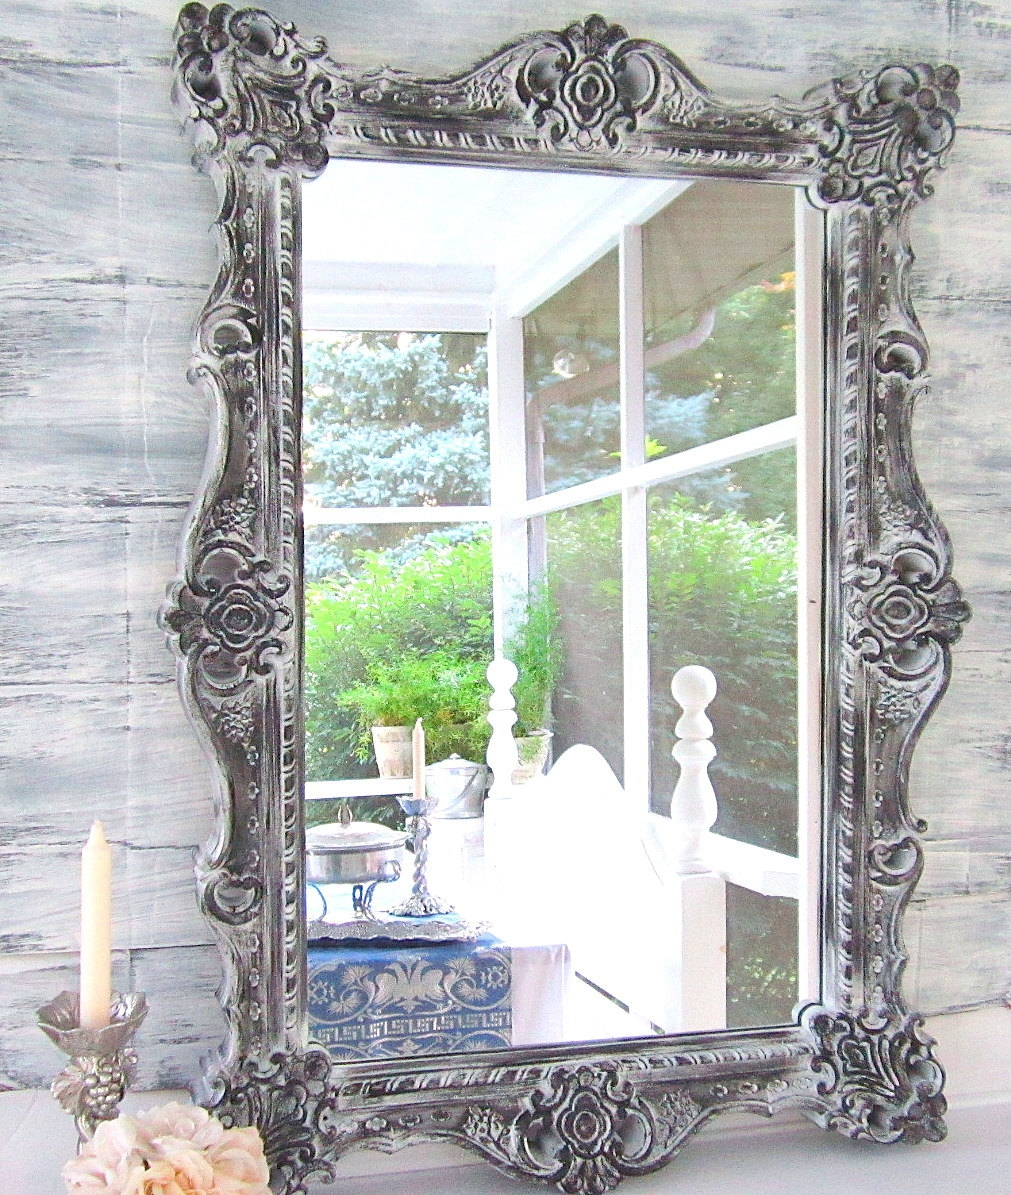 Decorative Vintage Mirrors For Sale Gray Blue Mirror 28×22 With Vintage Mirrors For Sale (Image 8 of 15)